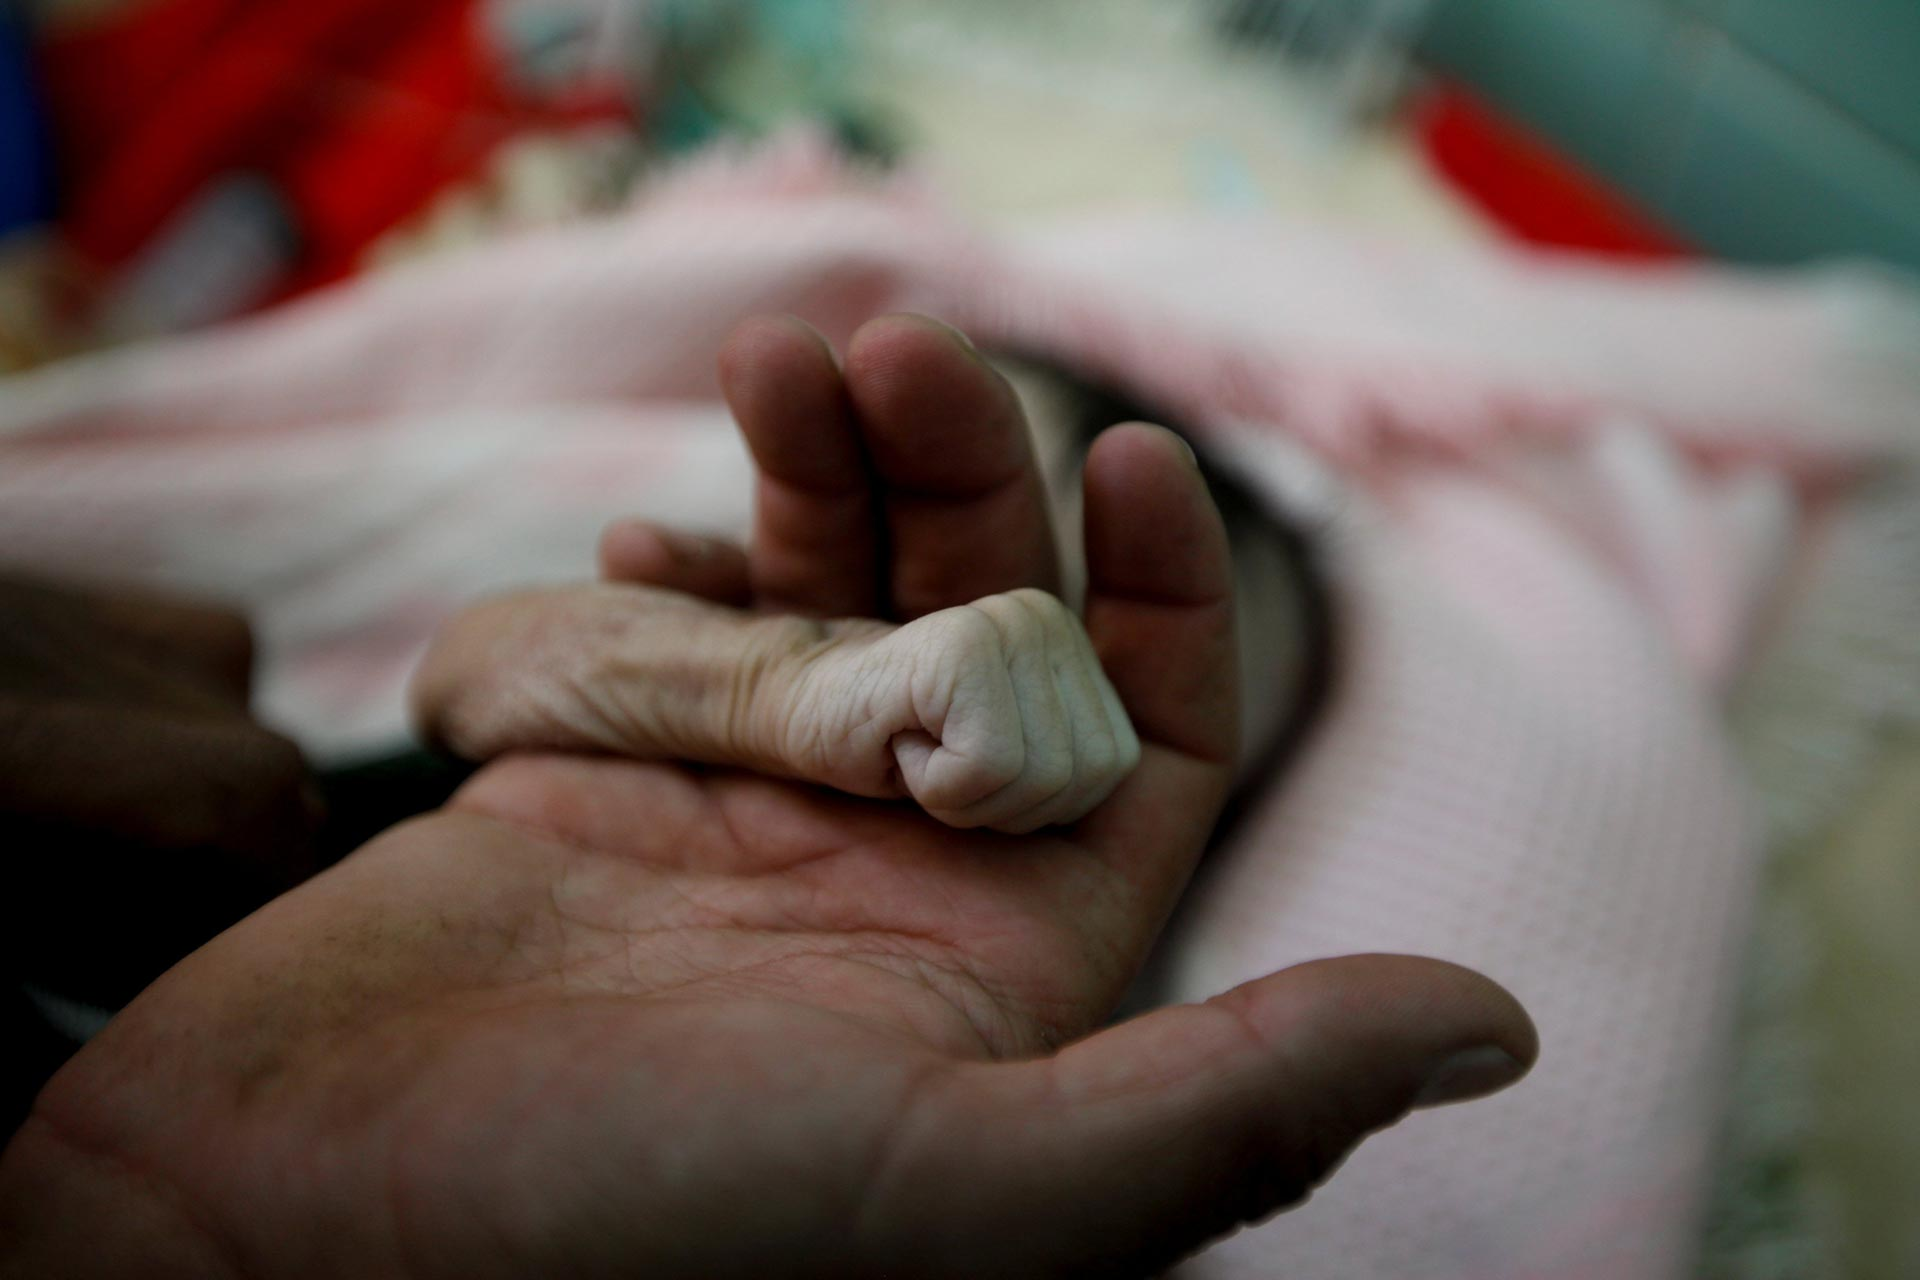 Saleh Hassan al-Faqeh holds the hand of his four-month-old daughter